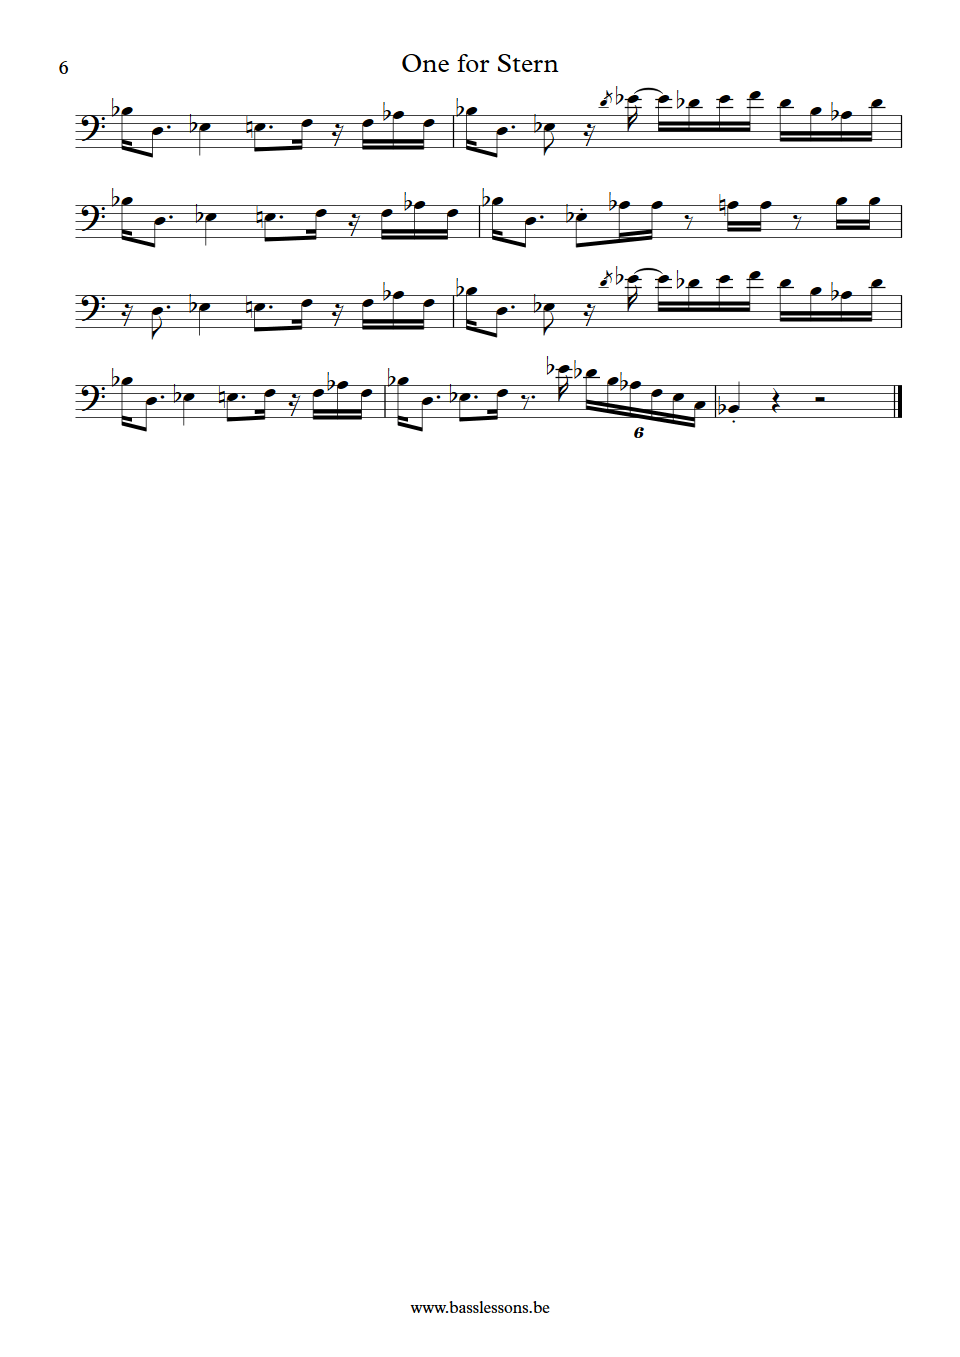 CAB - One for Stern - Bunny Brunel Bass Transcription